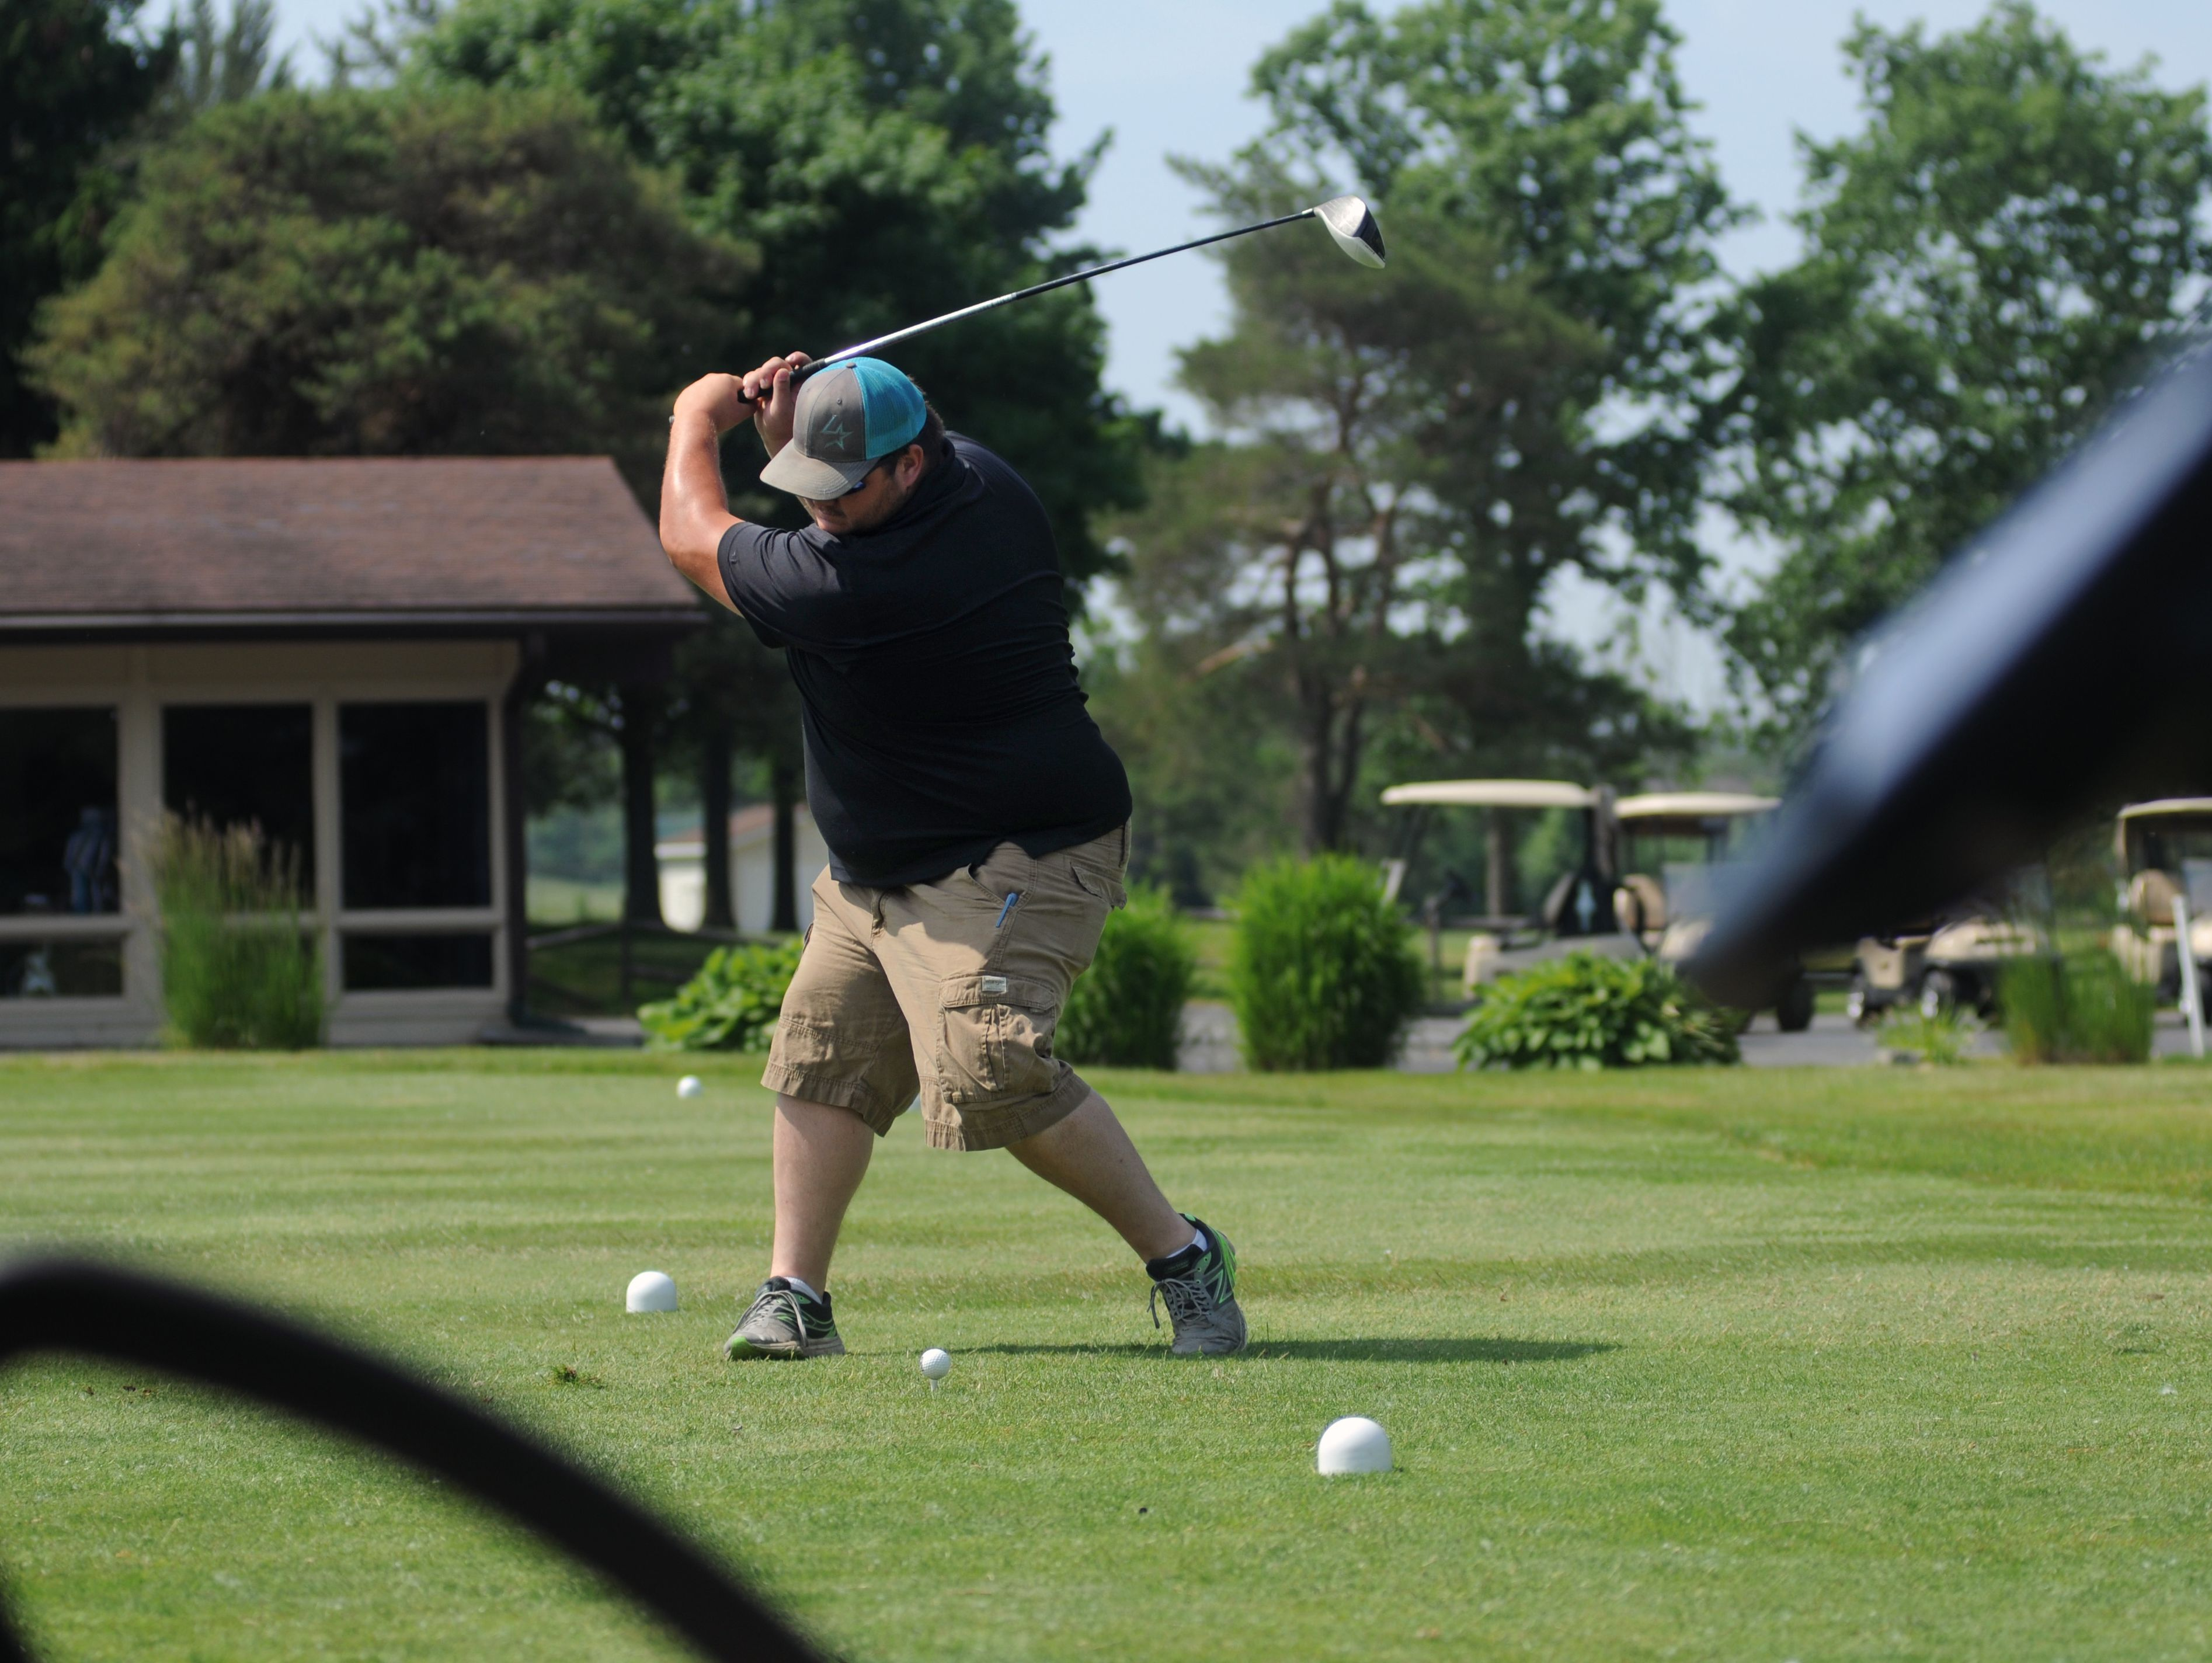 Jeff Lelito tees off Monday, June 20, during the Lelito Legacy Golf Outing at St. Clair Golf Cub.